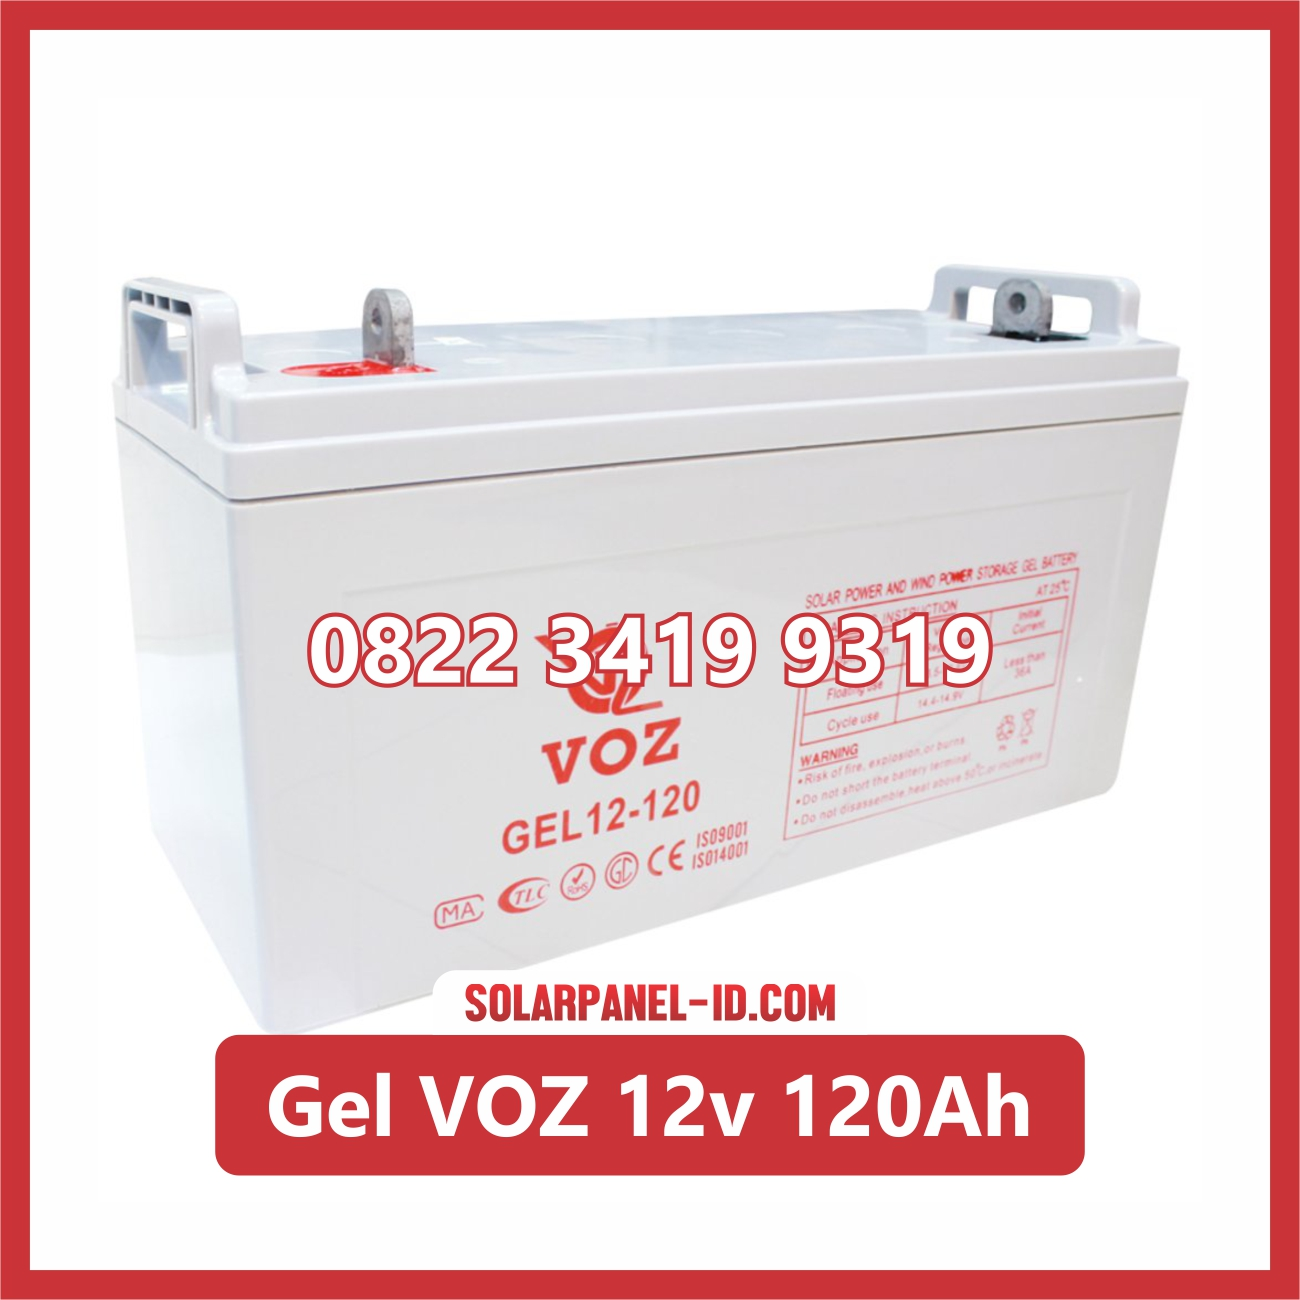 Aki Solar Cell Deep Cycle GEL VOZ 12v 120Ah